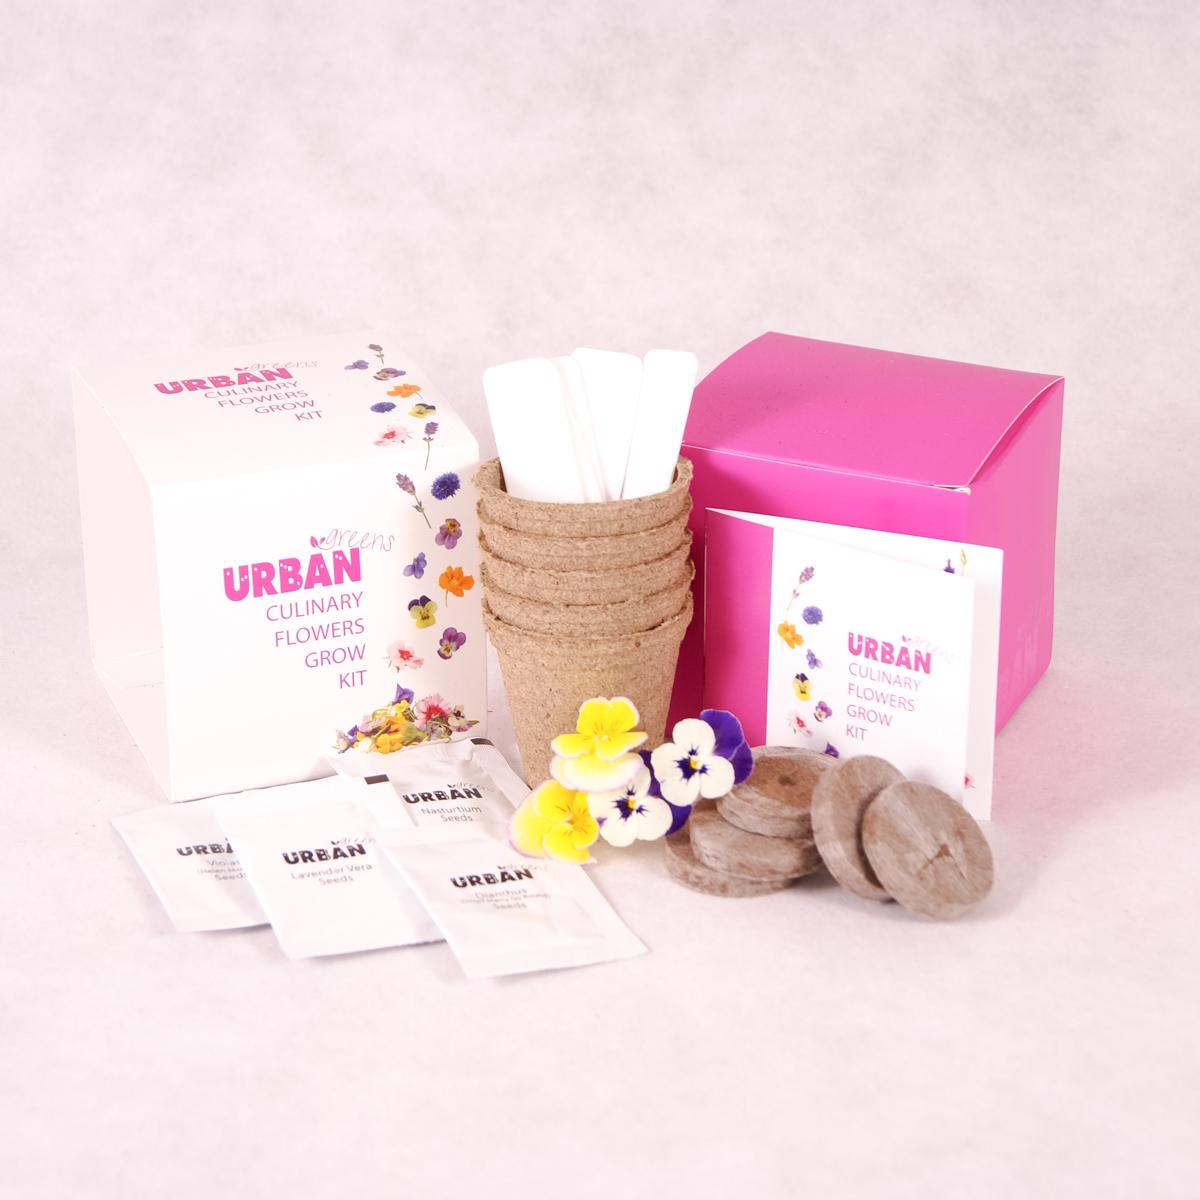 Culinary Flowers Growing Kit | Urban Greens - Growing Kit - Throw Some Seeds - Australian gardening gifts and eco products online!